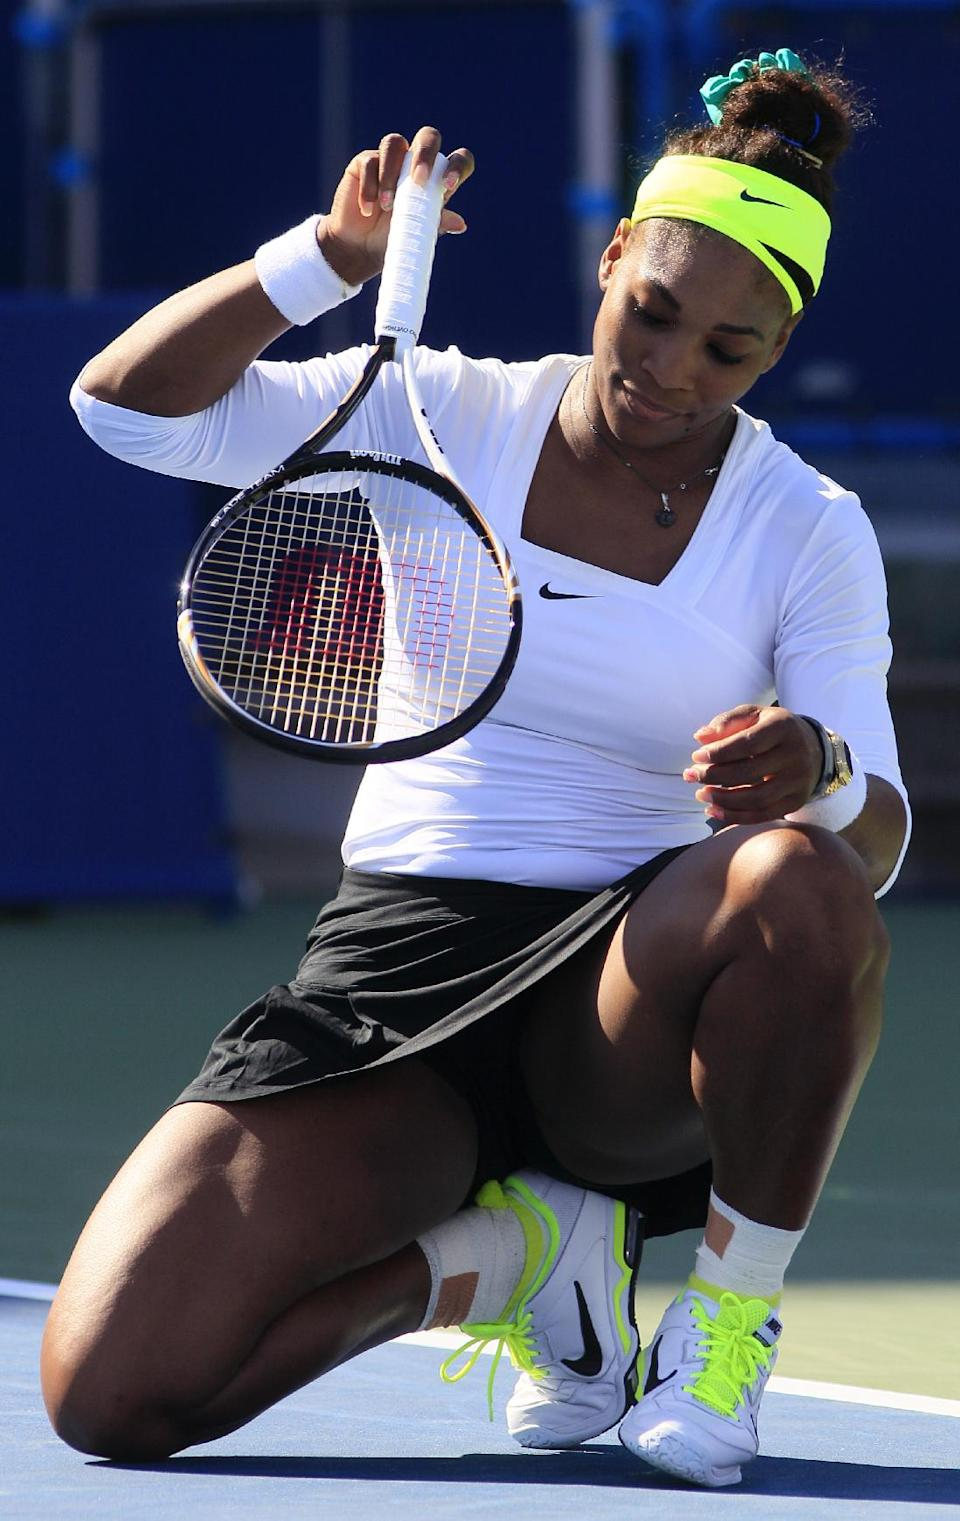 Serena Williams reacts after missing a point against Angelique Kerber, from Germany, during a quarterfinal at the Western & Southern Open tennis tournament, Friday, Aug. 17, 2012, in Mason, Ohio. Kerber won 6-4, 6-4. (AP Photo/Al Behrman)